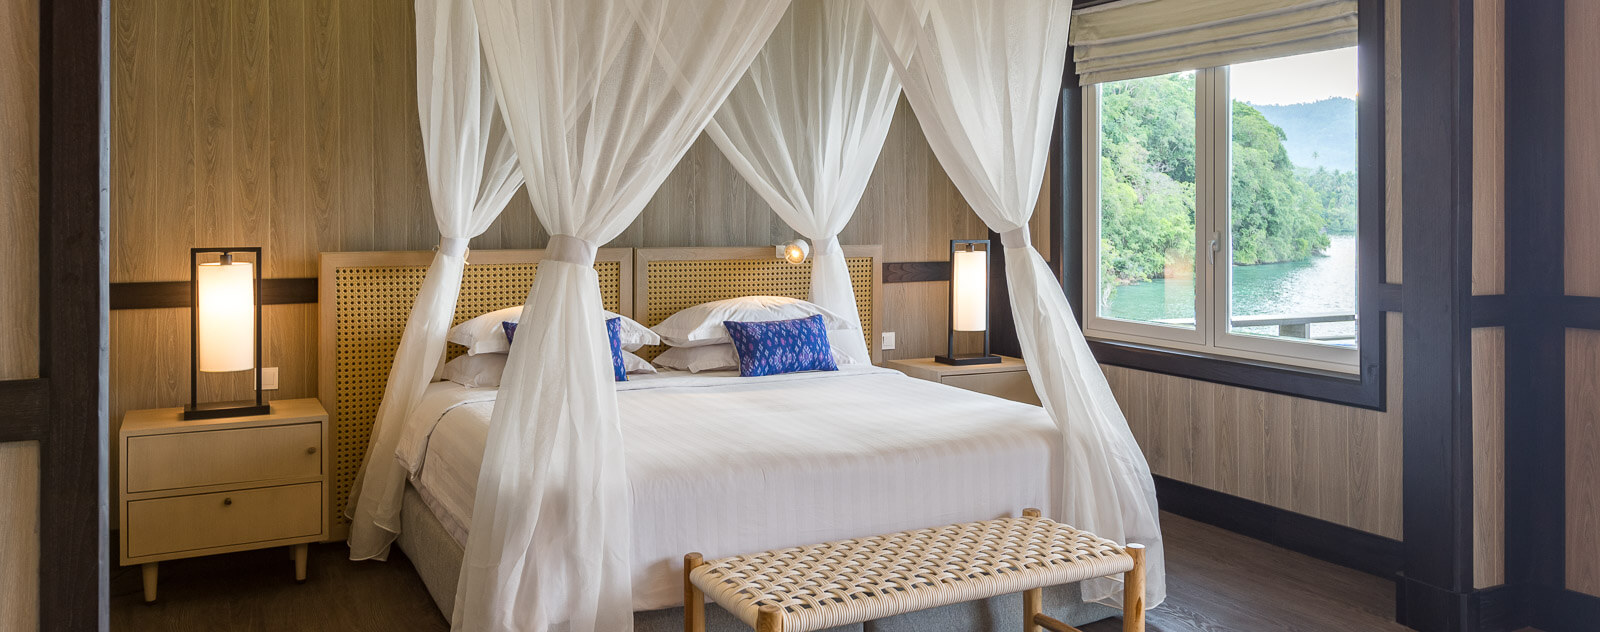 Lembeh Resort Luxury Cottage Bedroom